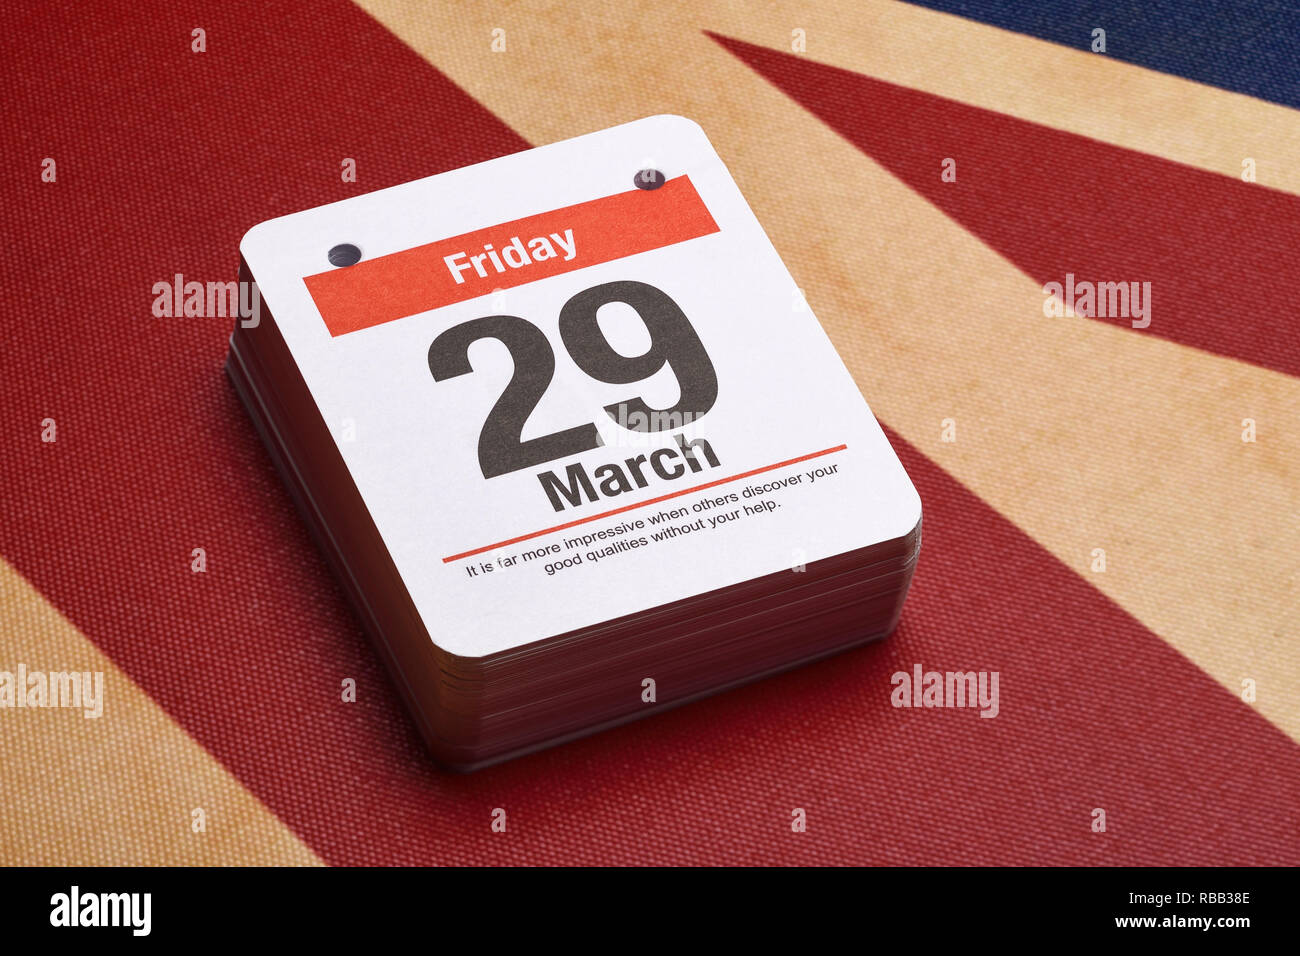 Friday March 29th 2019 is the scheduled date for the United Kingdom to leave the EU as part of Brexit - Stock Image